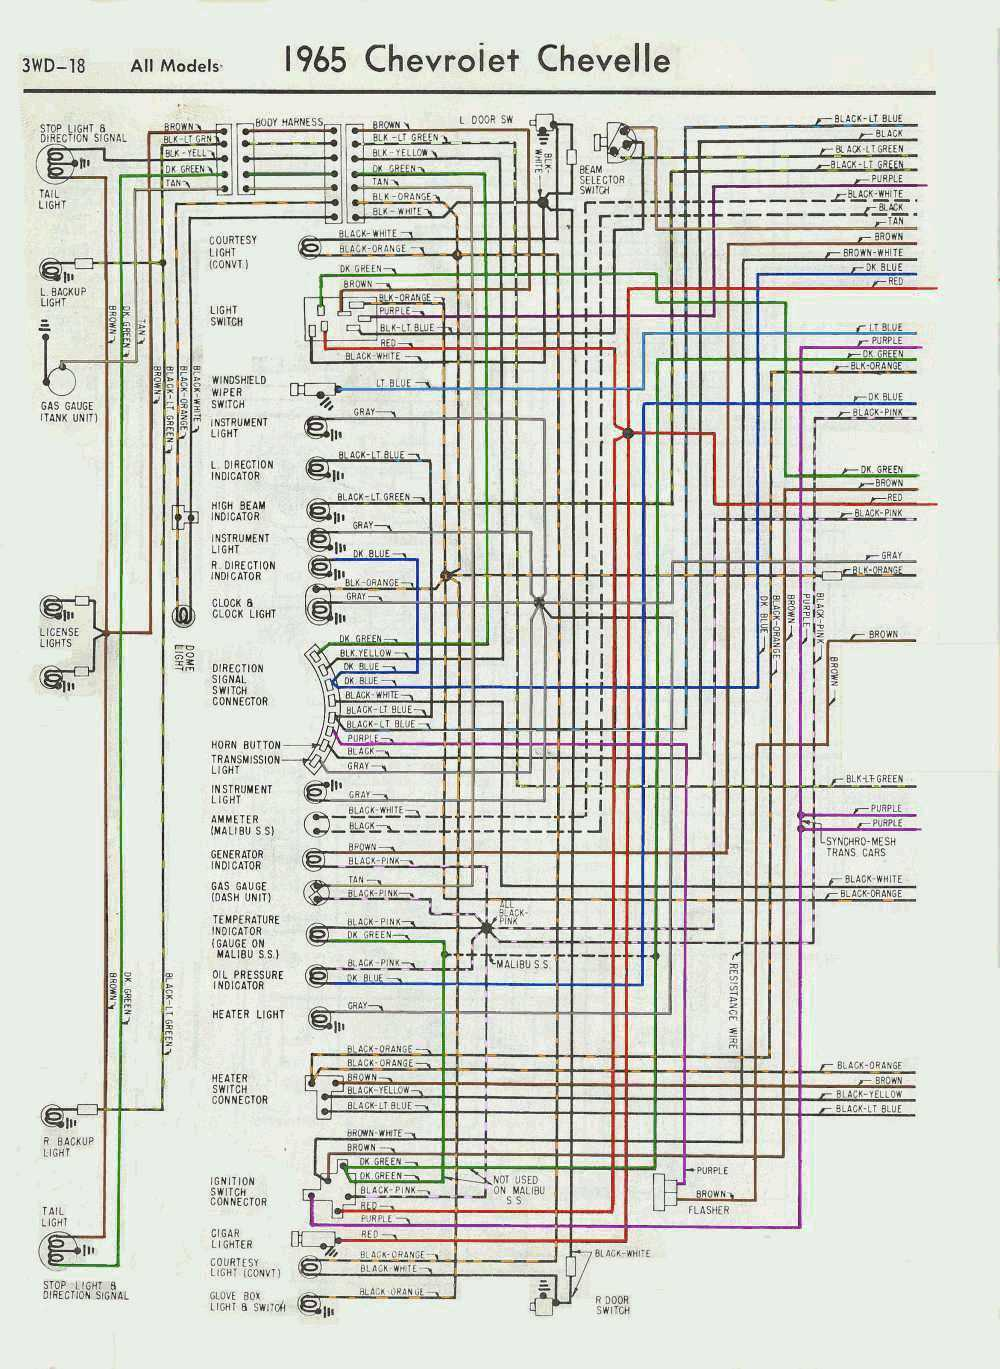 1969 chevelle wiring diagram pdf 1969 image wiring 72 chevelle wiring diagram pdf 72 automotive wiring diagram database on 1969 chevelle wiring diagram pdf